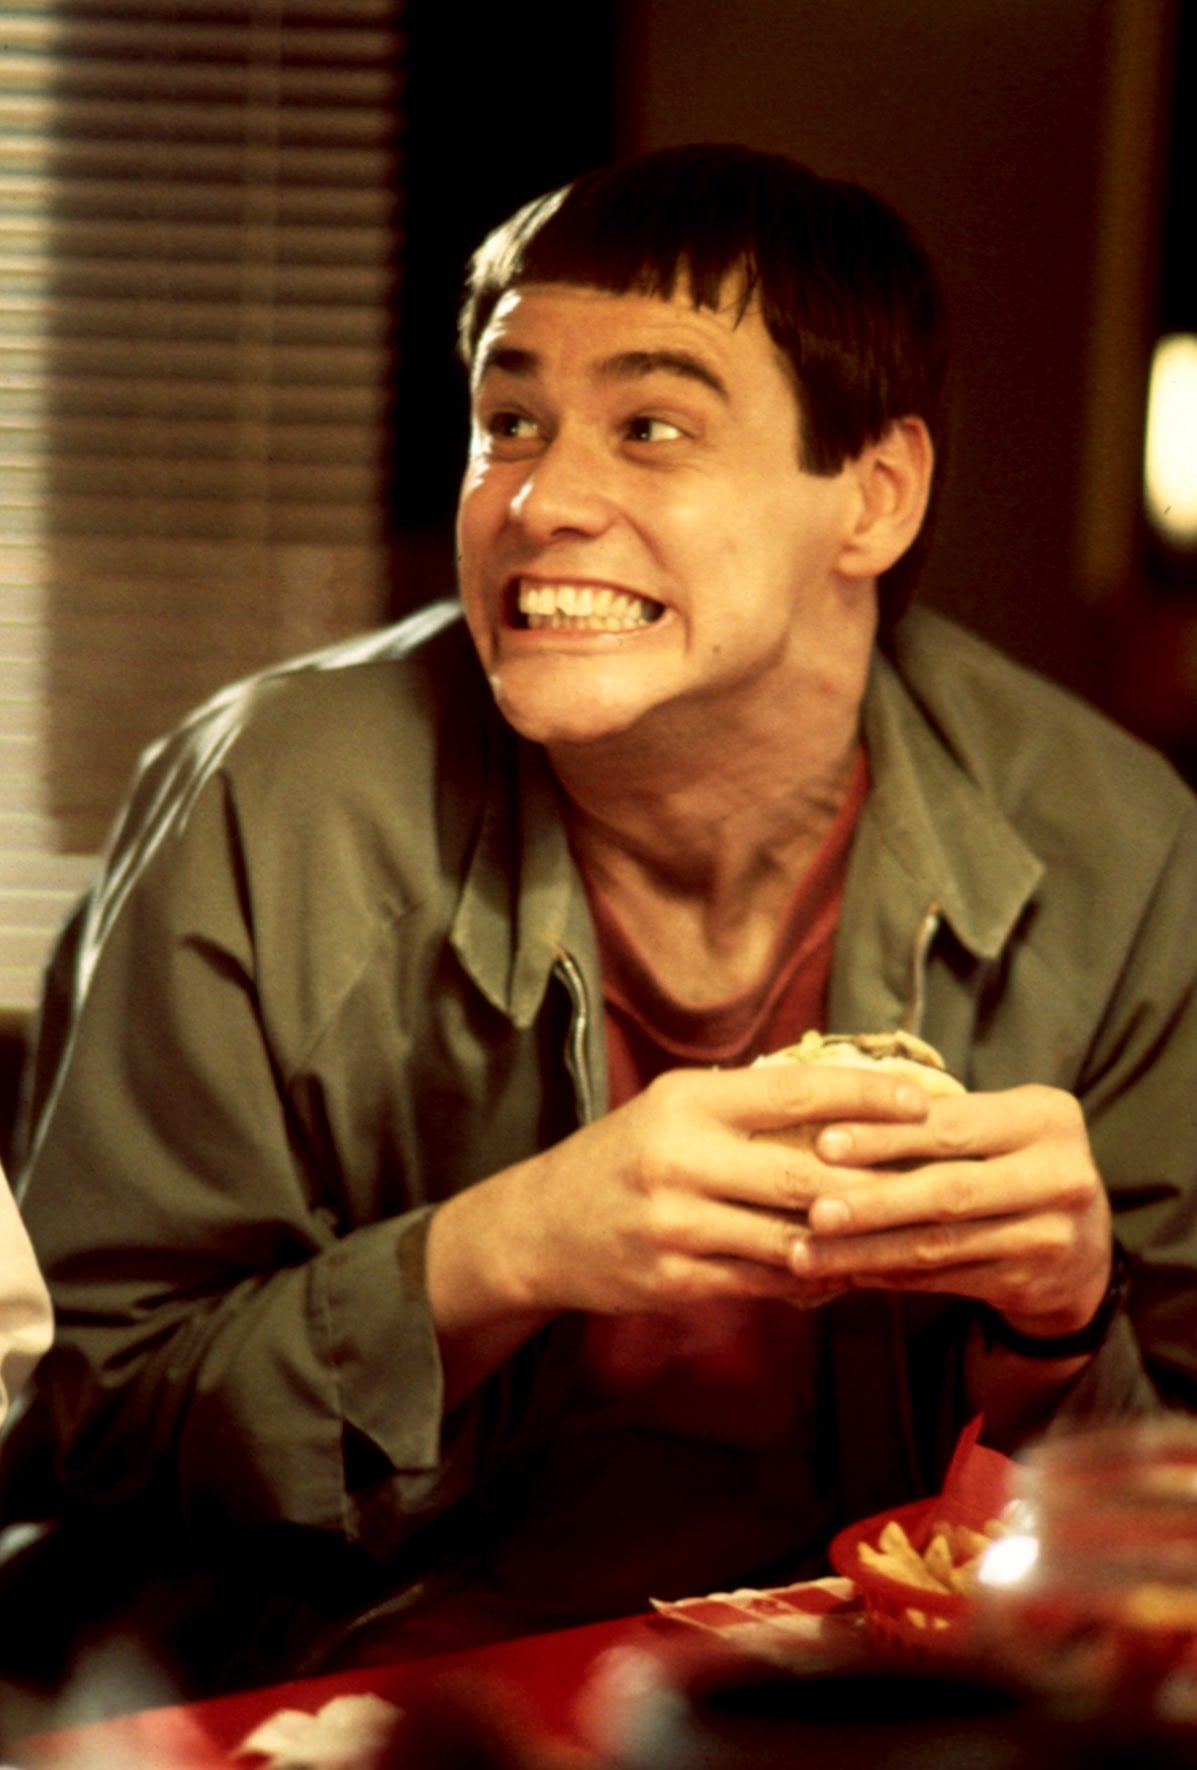 Lloyd Christmas.Lloyd Christmas From Dumb Dumber Embrace Your Funny Side